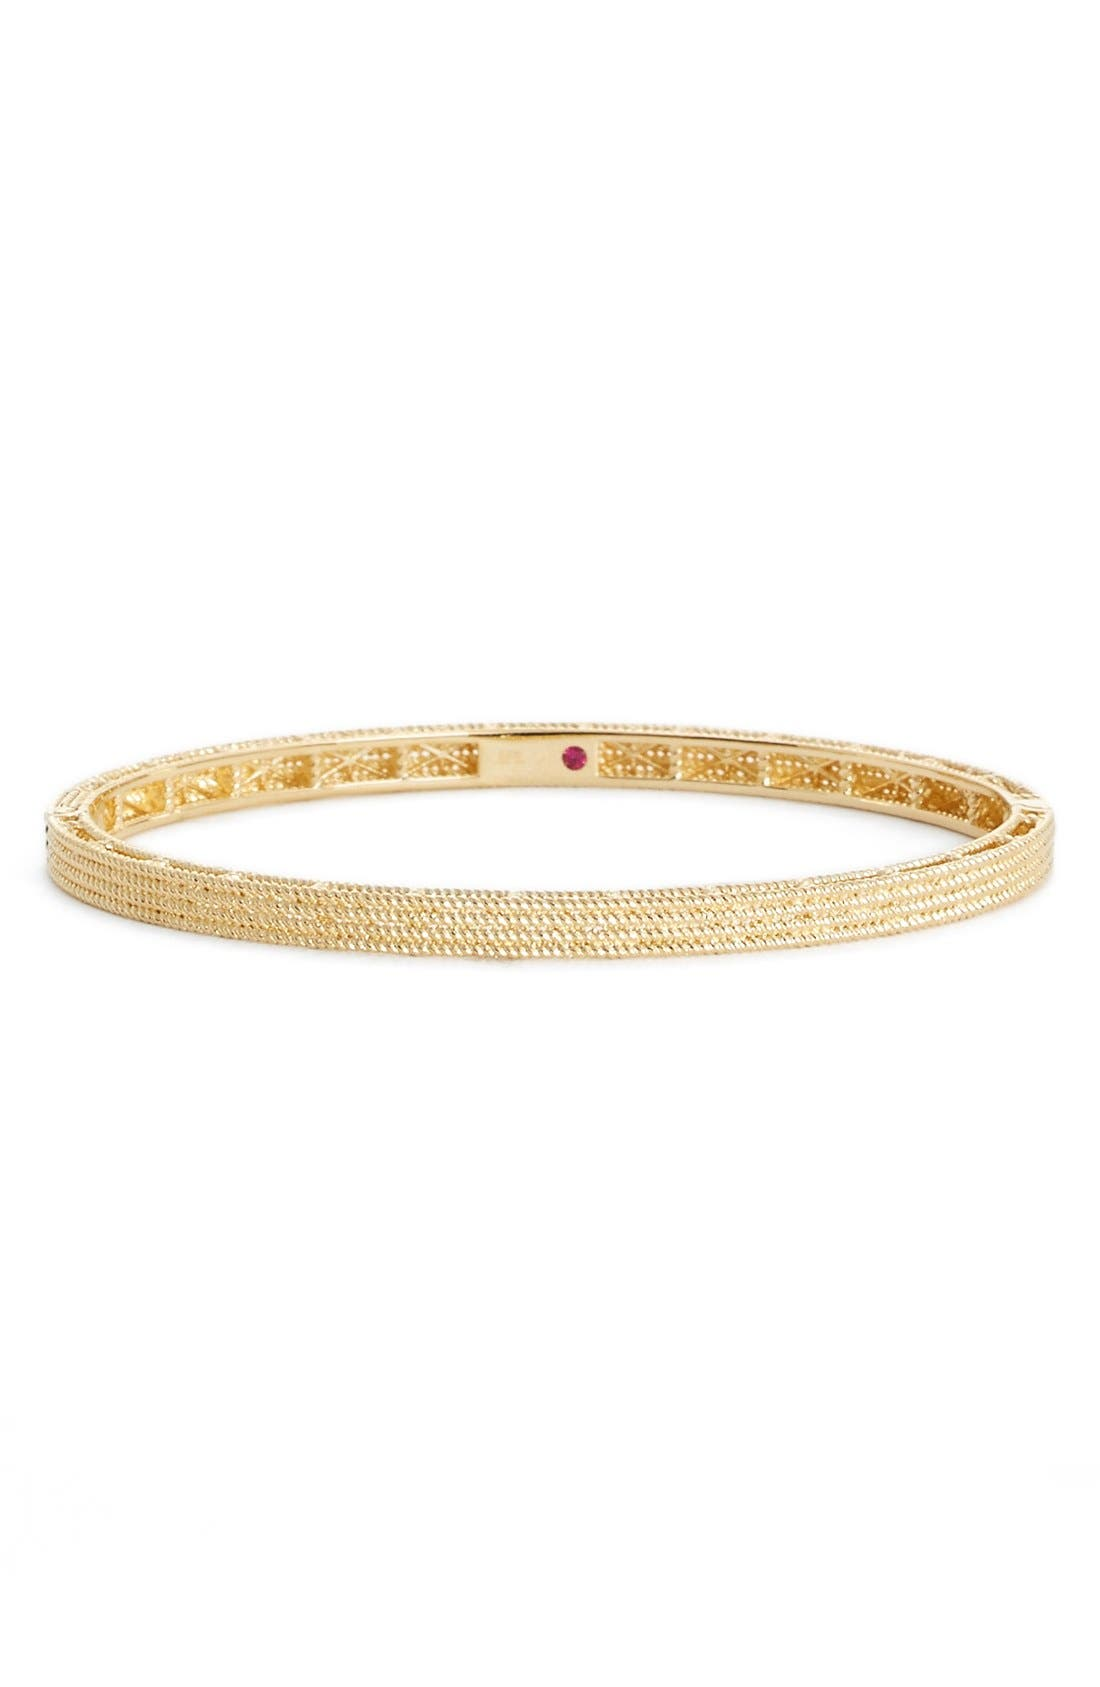 'Symphony - Barocco' Bangle Bracelet,                         Main,                         color, Yellow Gold